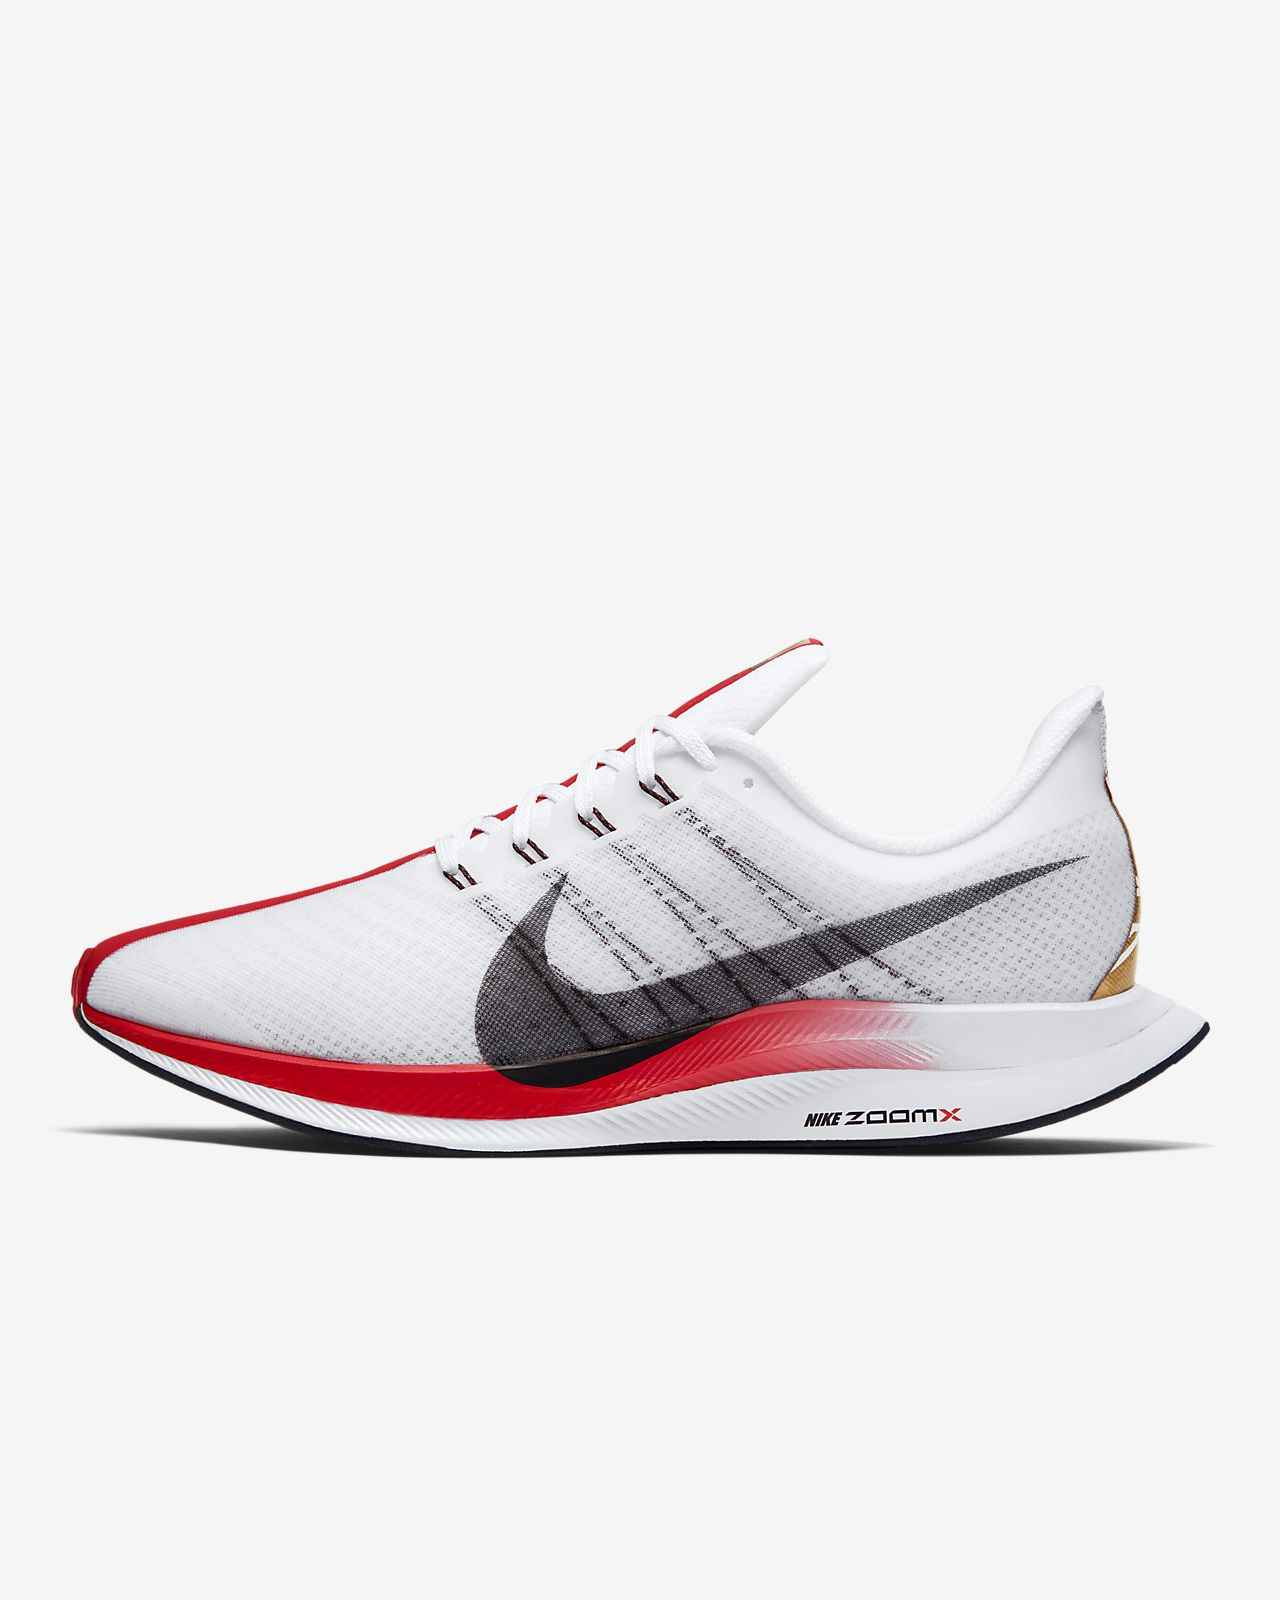 Chaussure de running Nike Zoom Pegasus 35 Turbo Mo